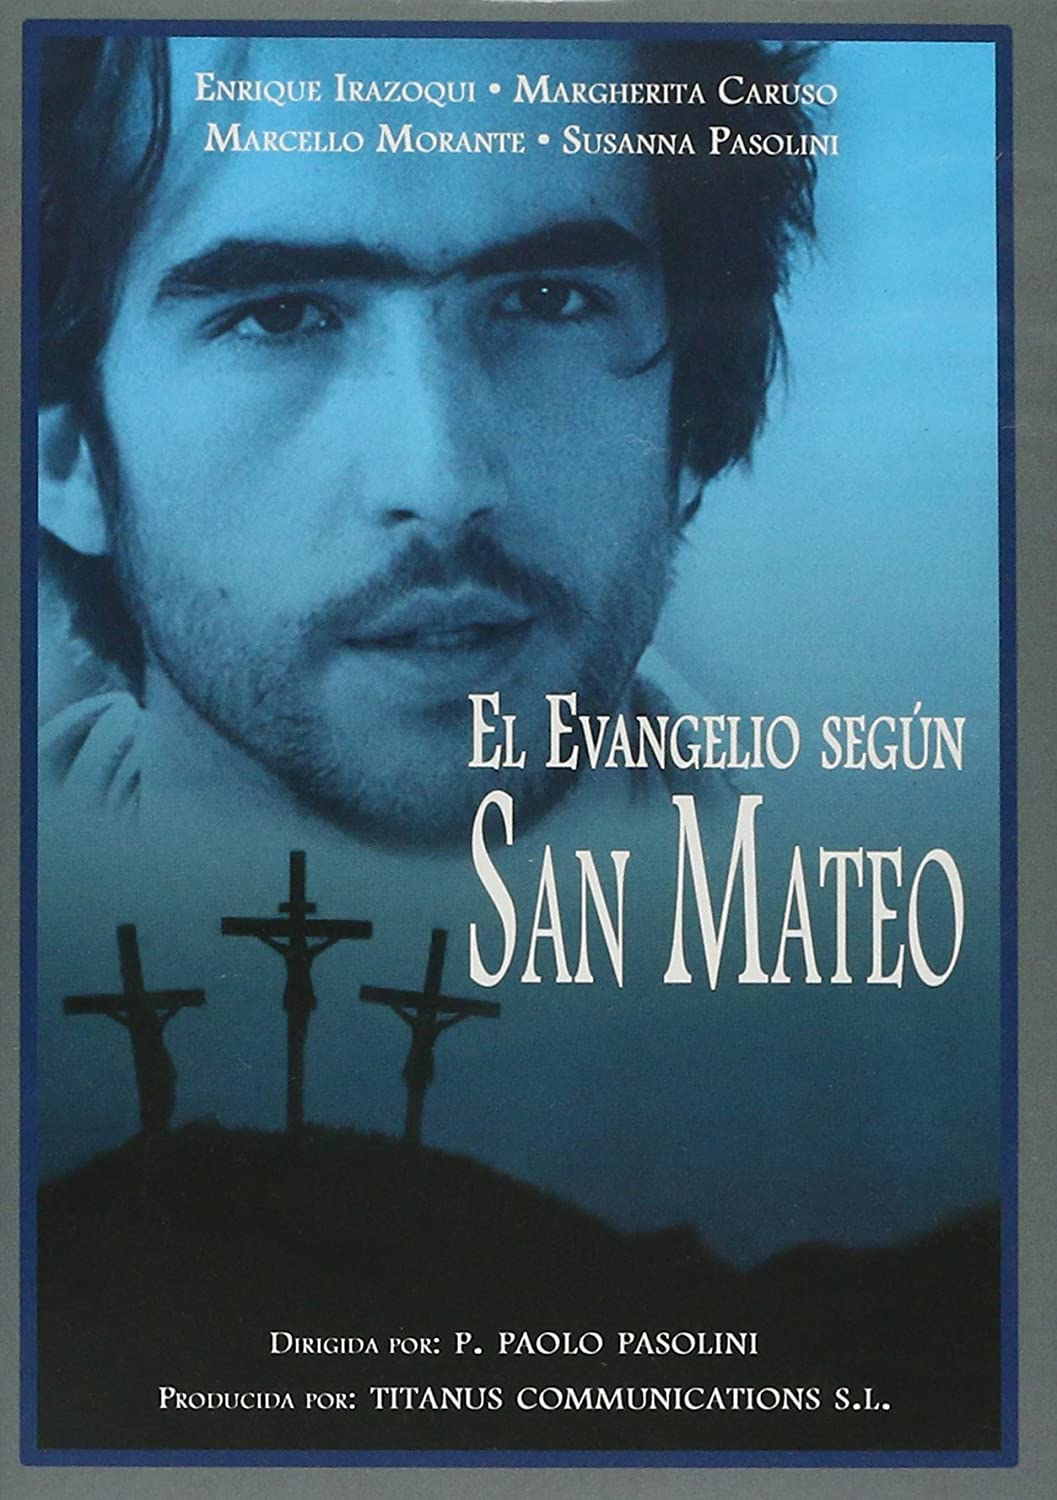 Amazon.com: - El Evangelio Segun San Mateo (IL VANGELIO SECONDO MATTEO) [NTSC MULTI-REGION DVD. Import-Latin America] by Pier Paolo Pasolini **Spanish audio ...